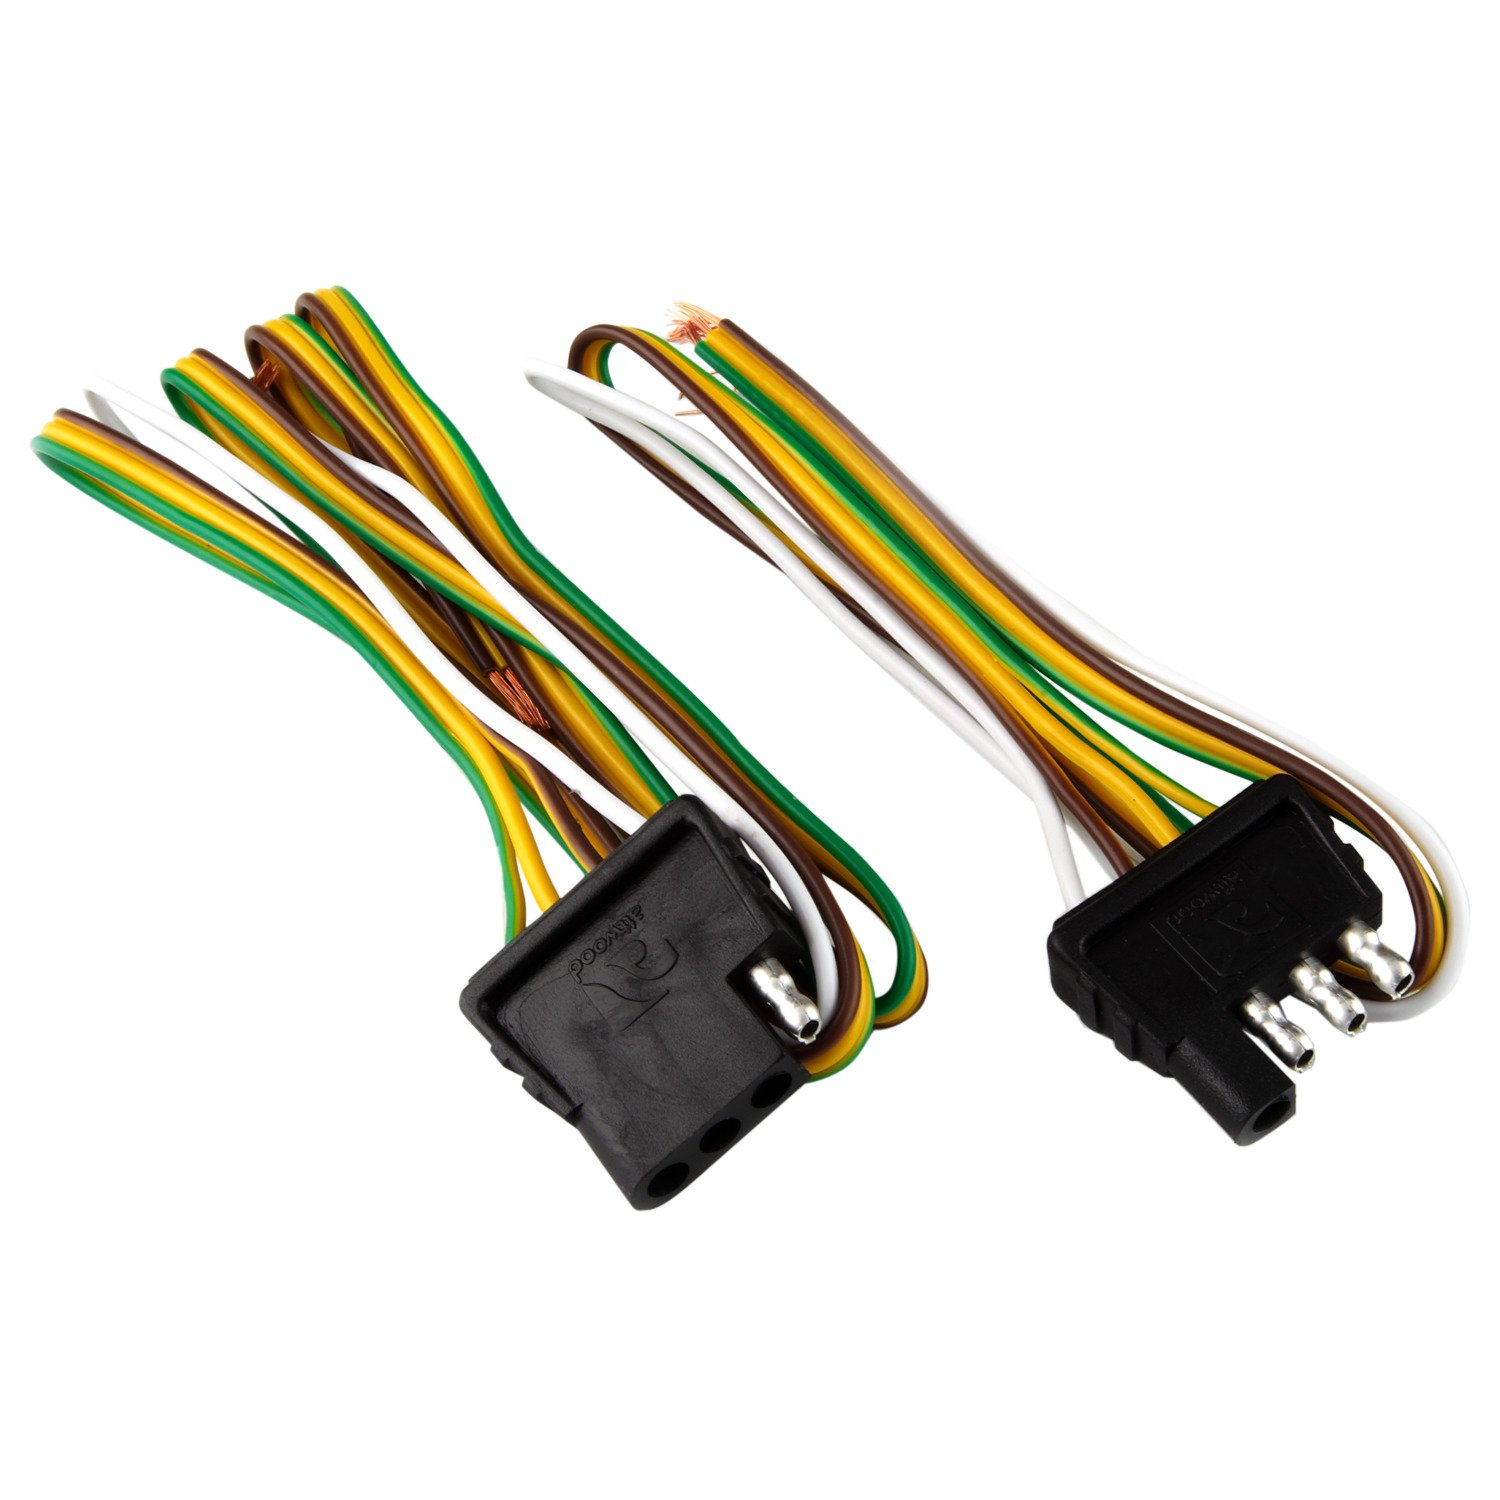 attwood 4 way flat wiring harness kit for vehicles and trailers rh academy com wiring harness kits for 1958 chevy truck wiring harness kits 500661